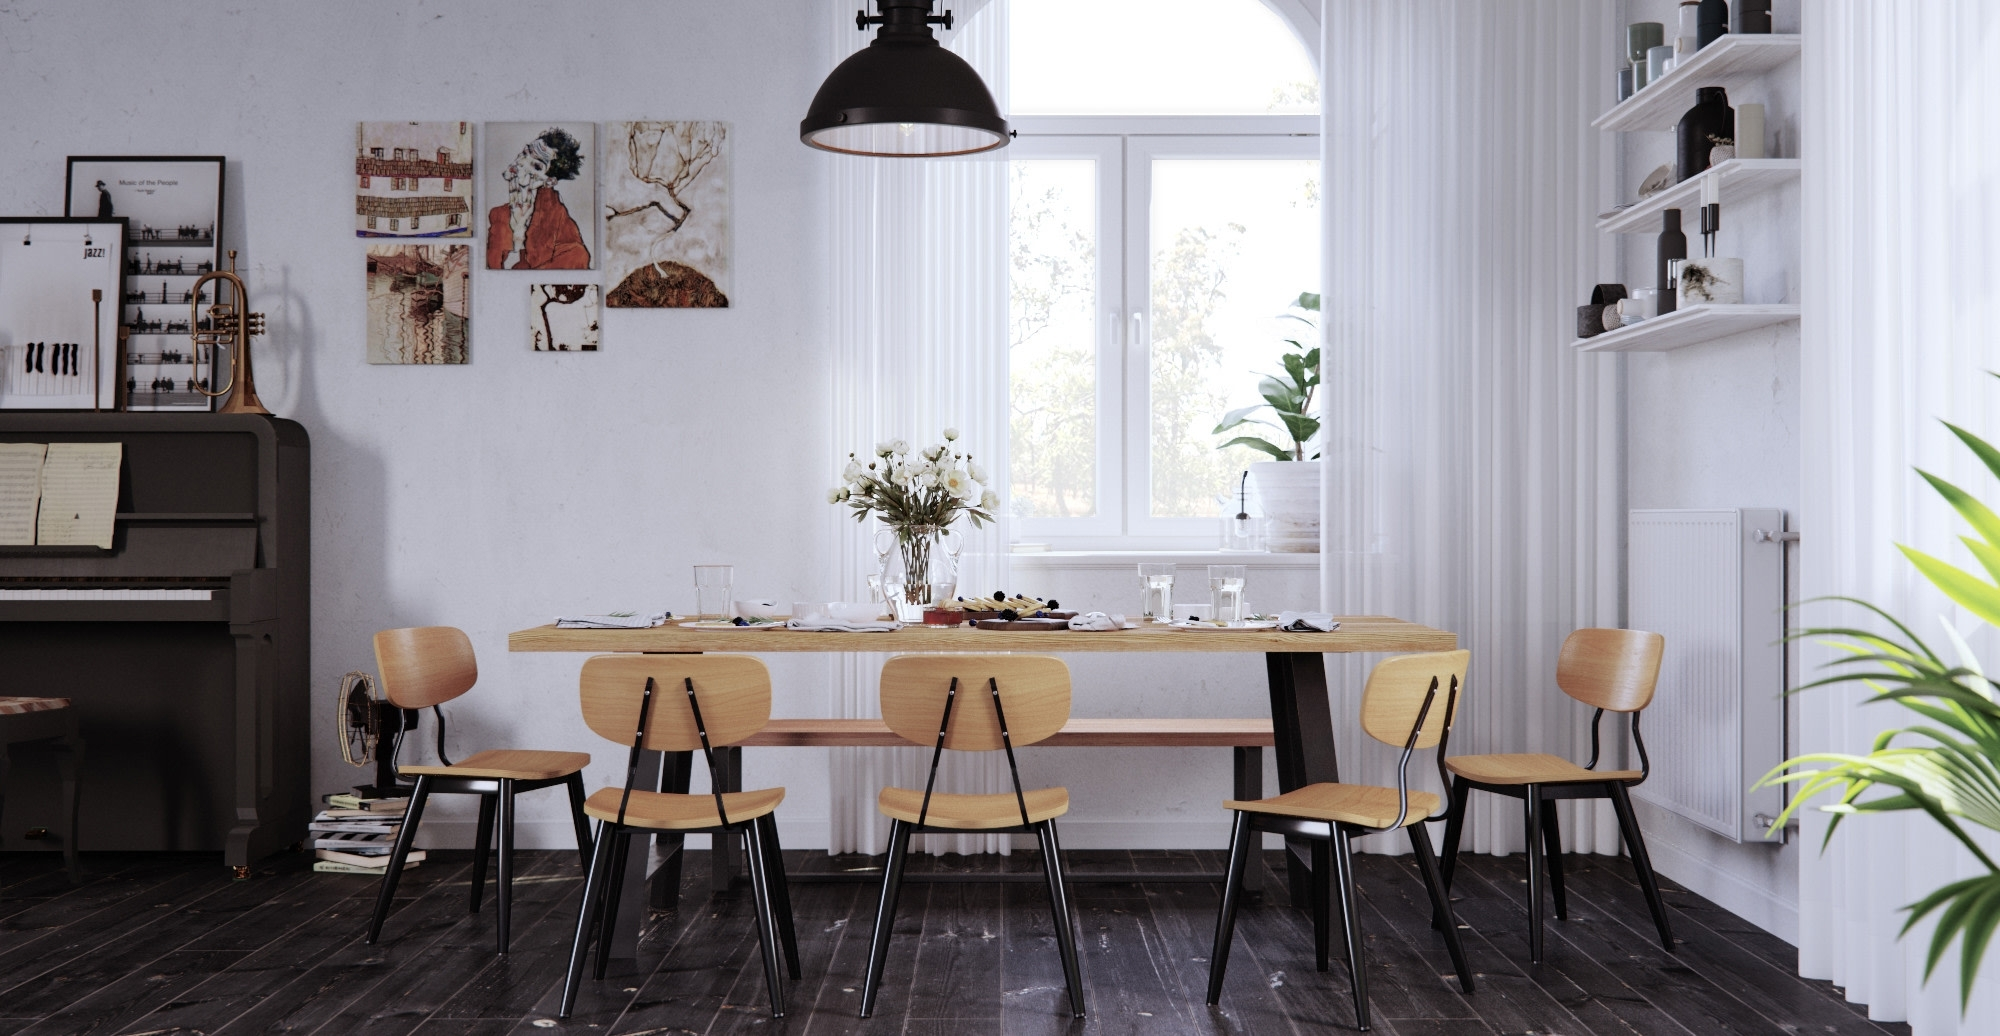 Dining Table Styles For Small Spaces | Brosa Intended For Most Current Helms 6 Piece Rectangle Dining Sets (Image 5 of 20)